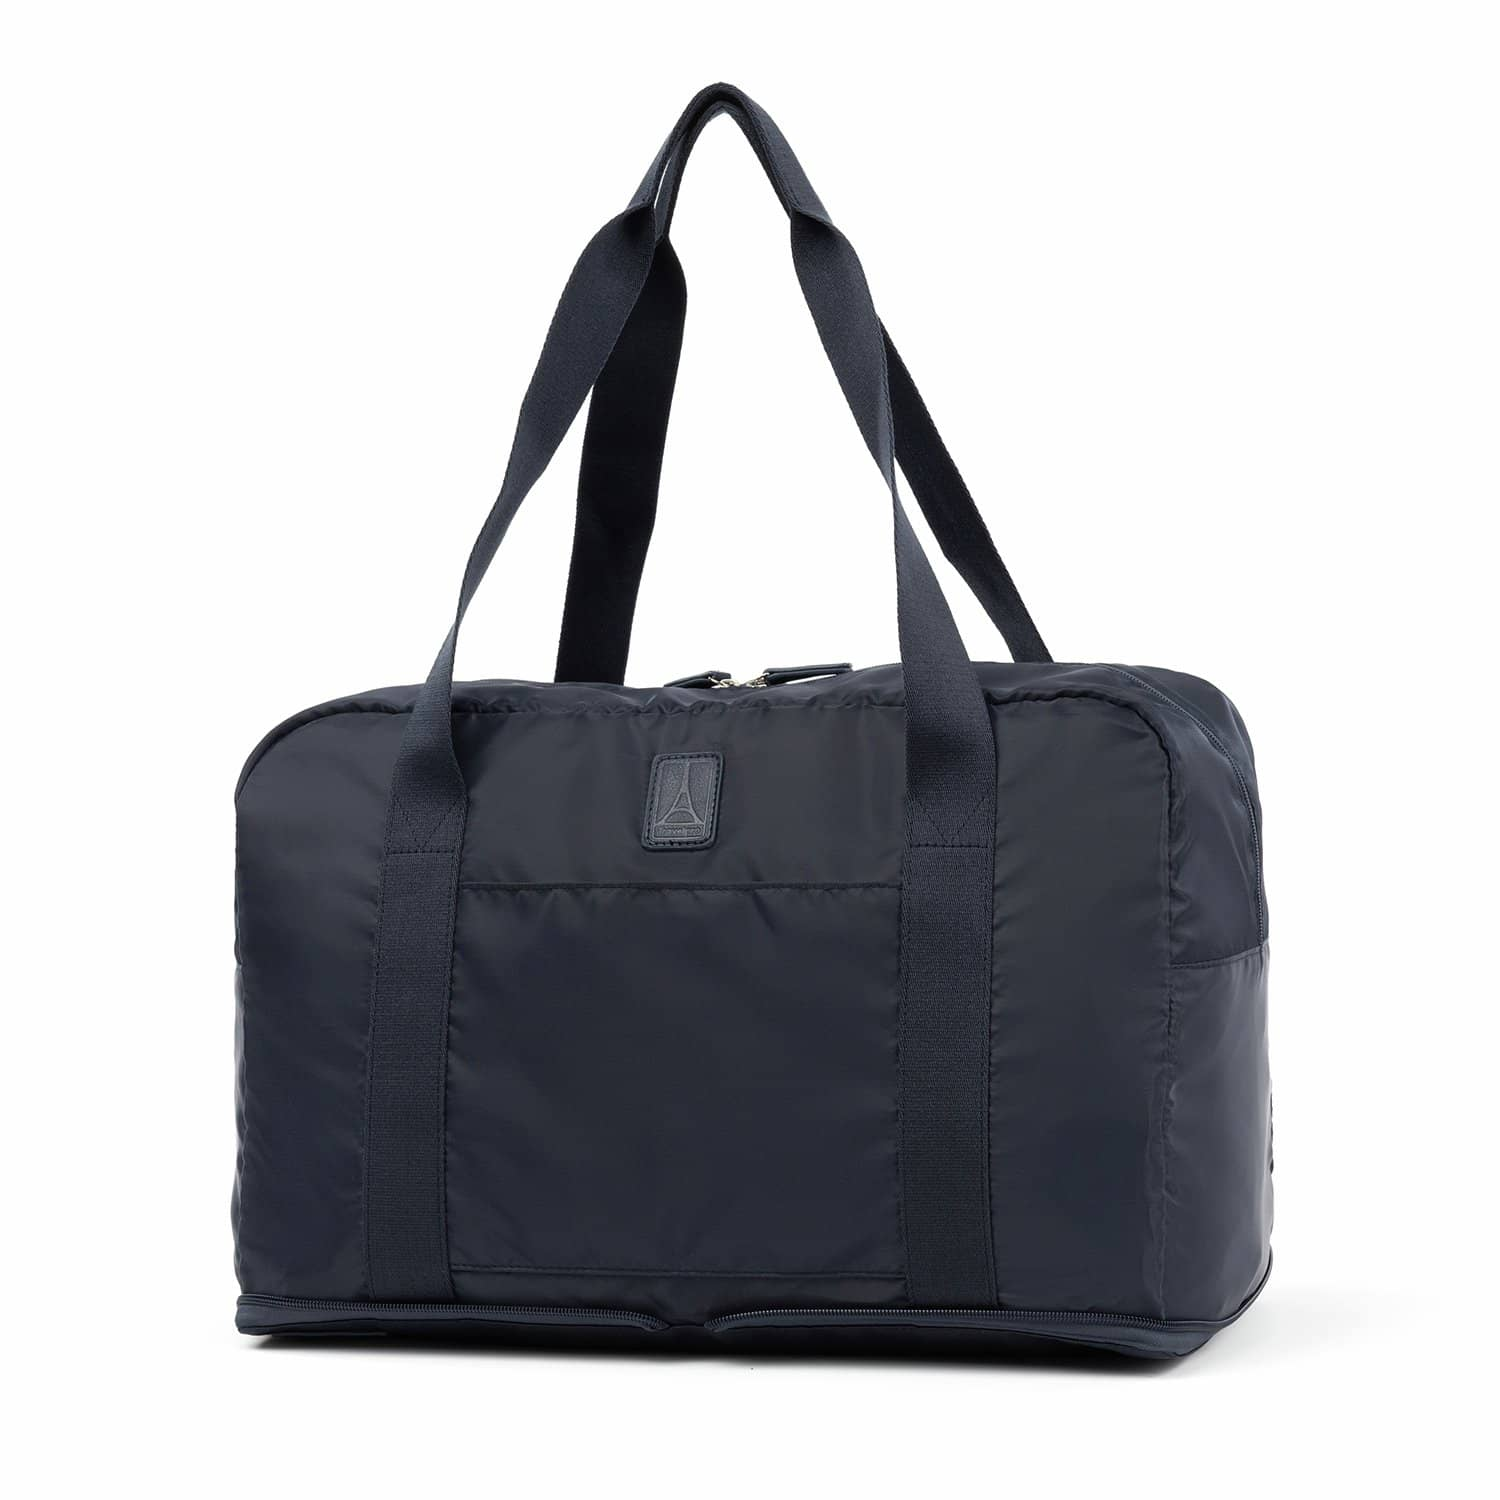 Travelpro Travelpro® Essentials™ Sparepack™ Foldable Duffel NAVY